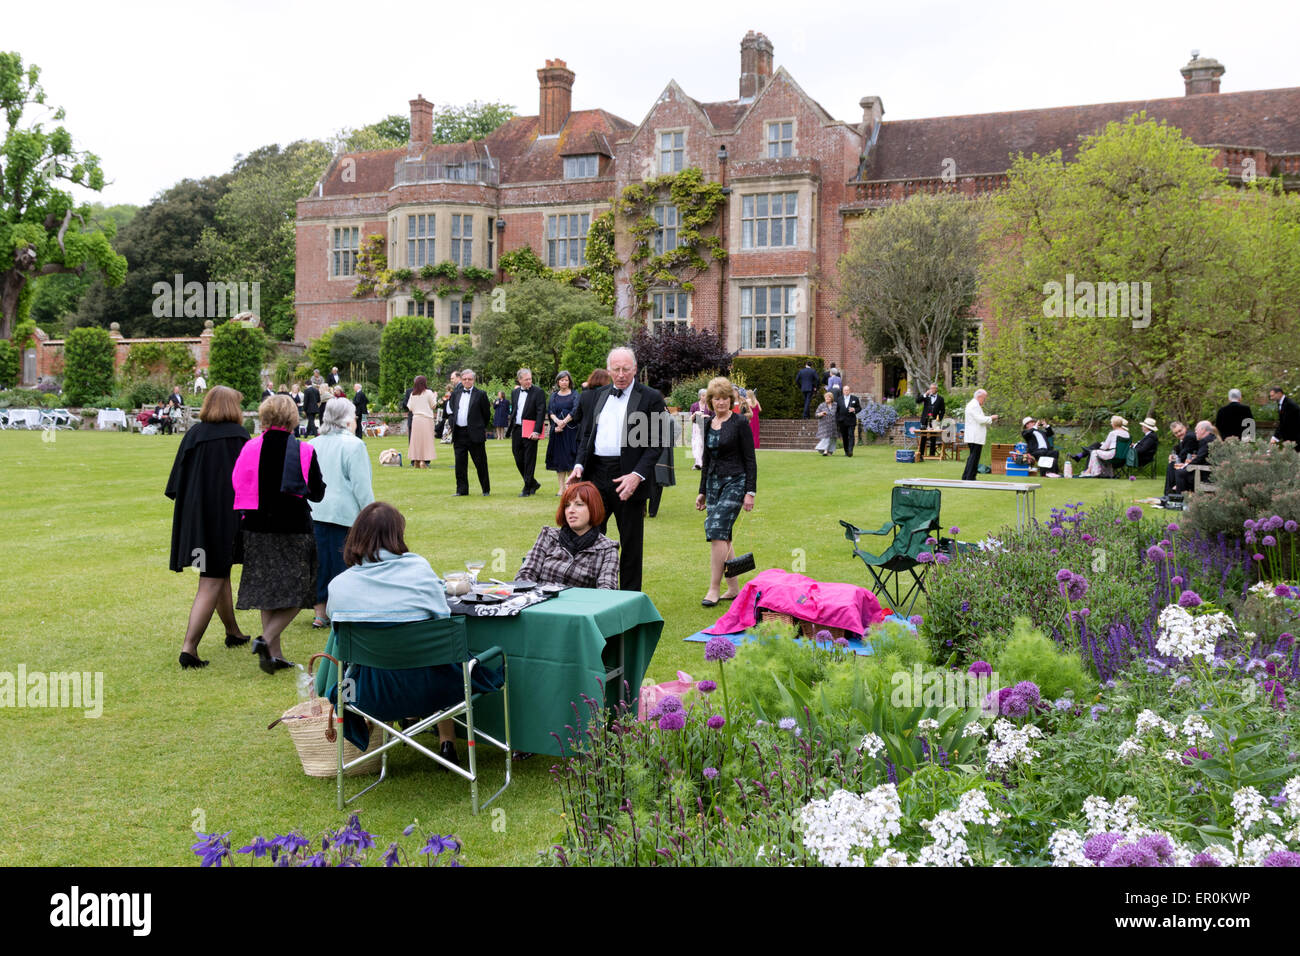 people-having-a-picnic-at-the-glyndebour